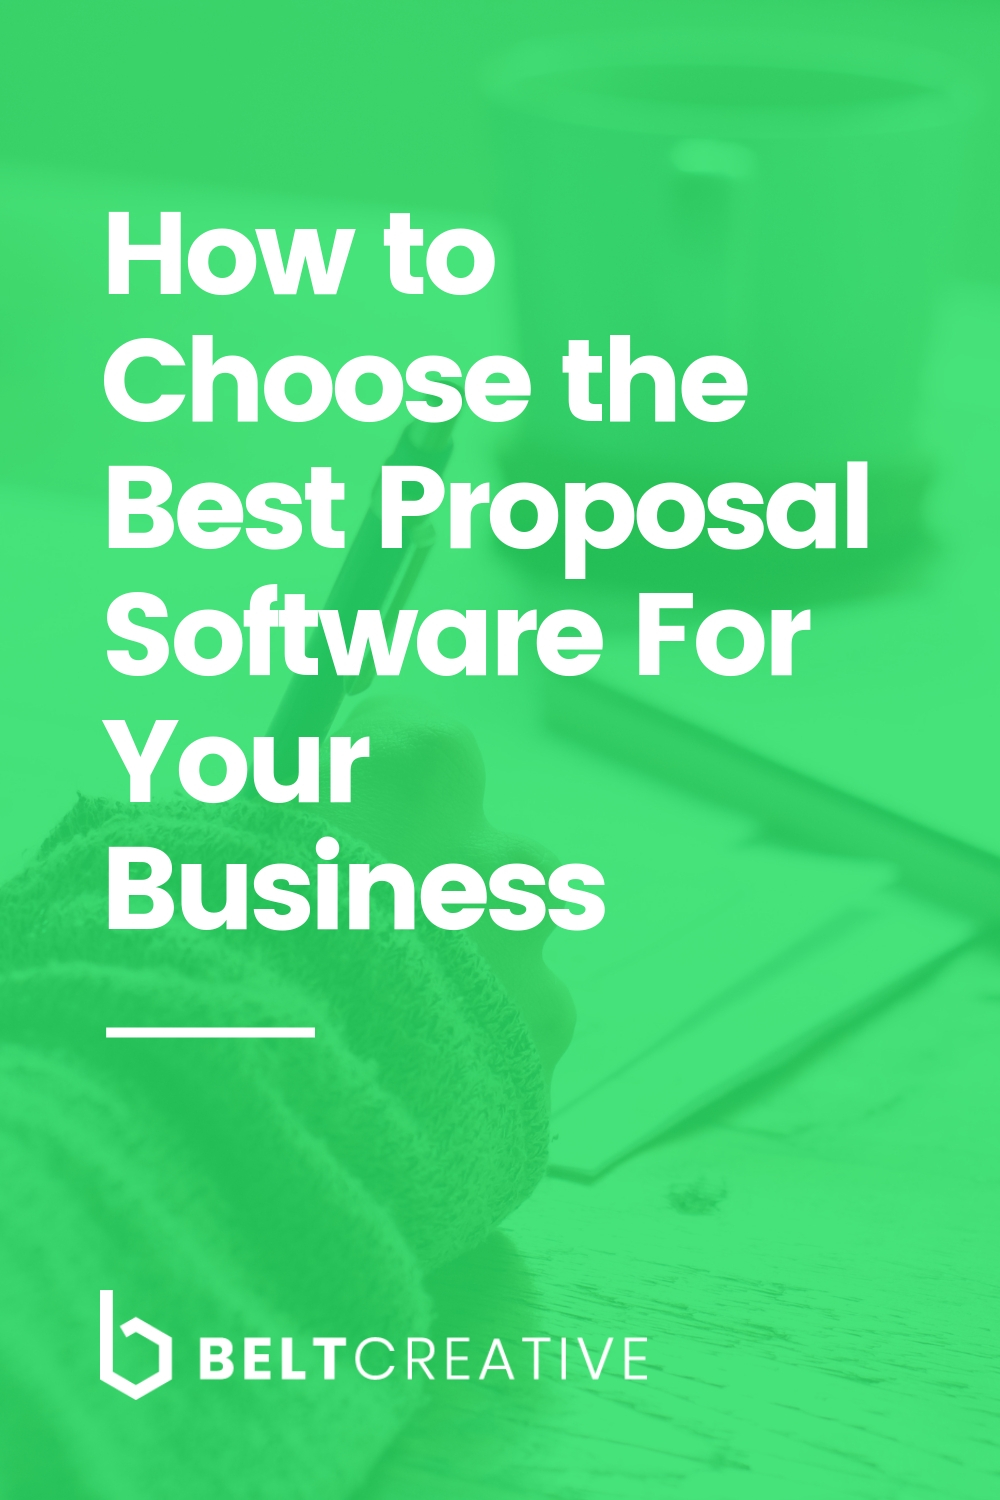 How to Choose The Best Proposal Software For Your Business.jpg